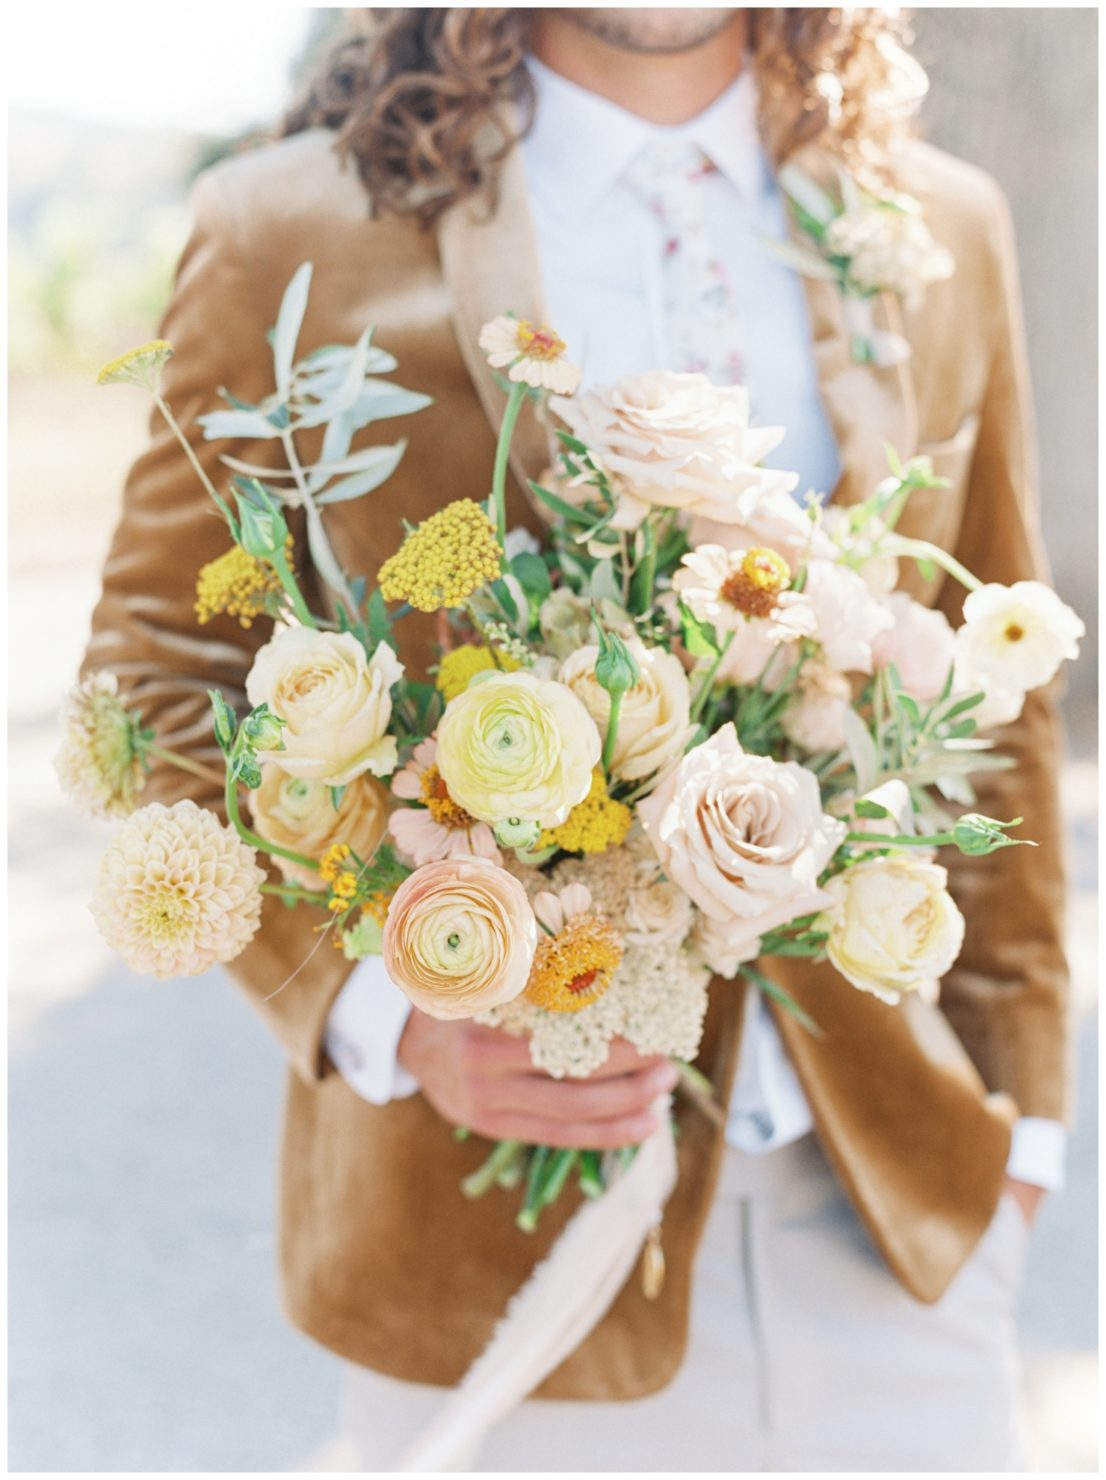 Stylish And Summery Wedding At A Winery In Greece Groom And Bridal Bouquet